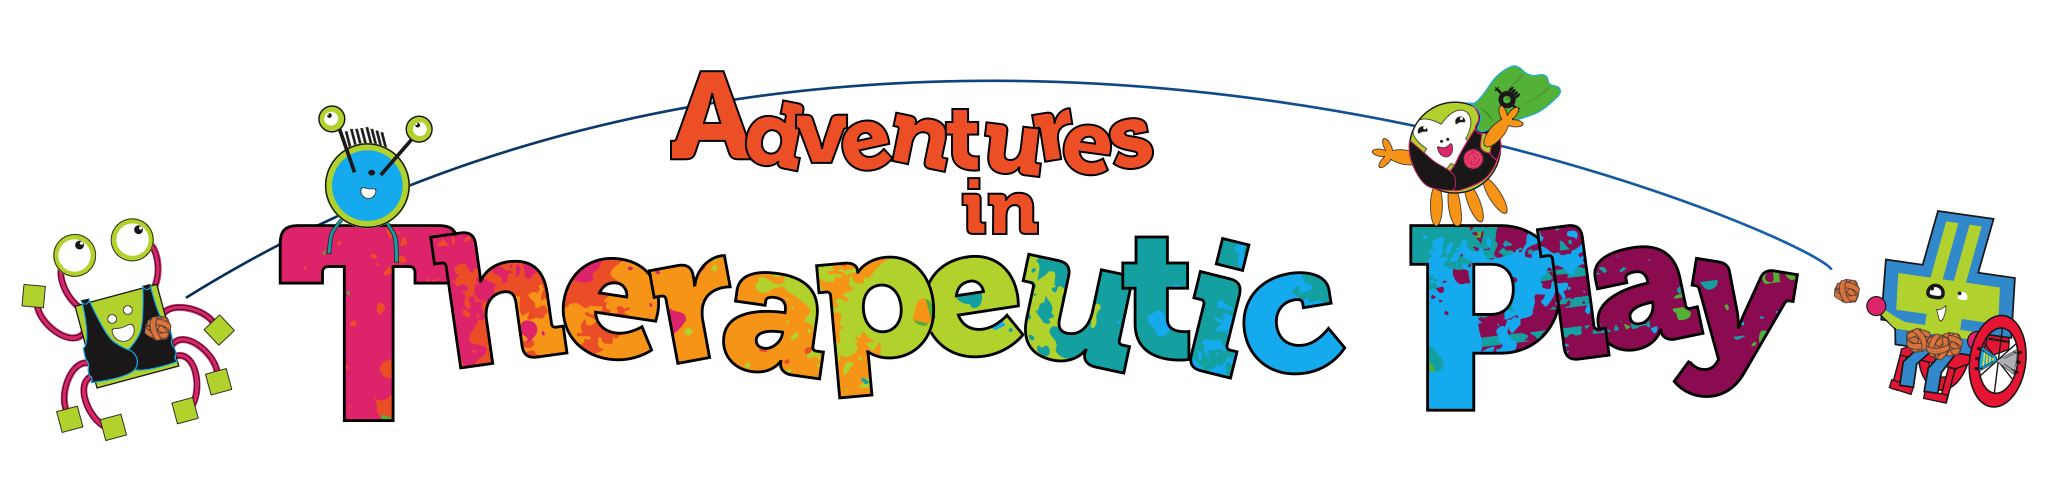 Adventures in Therapeutic Play banner